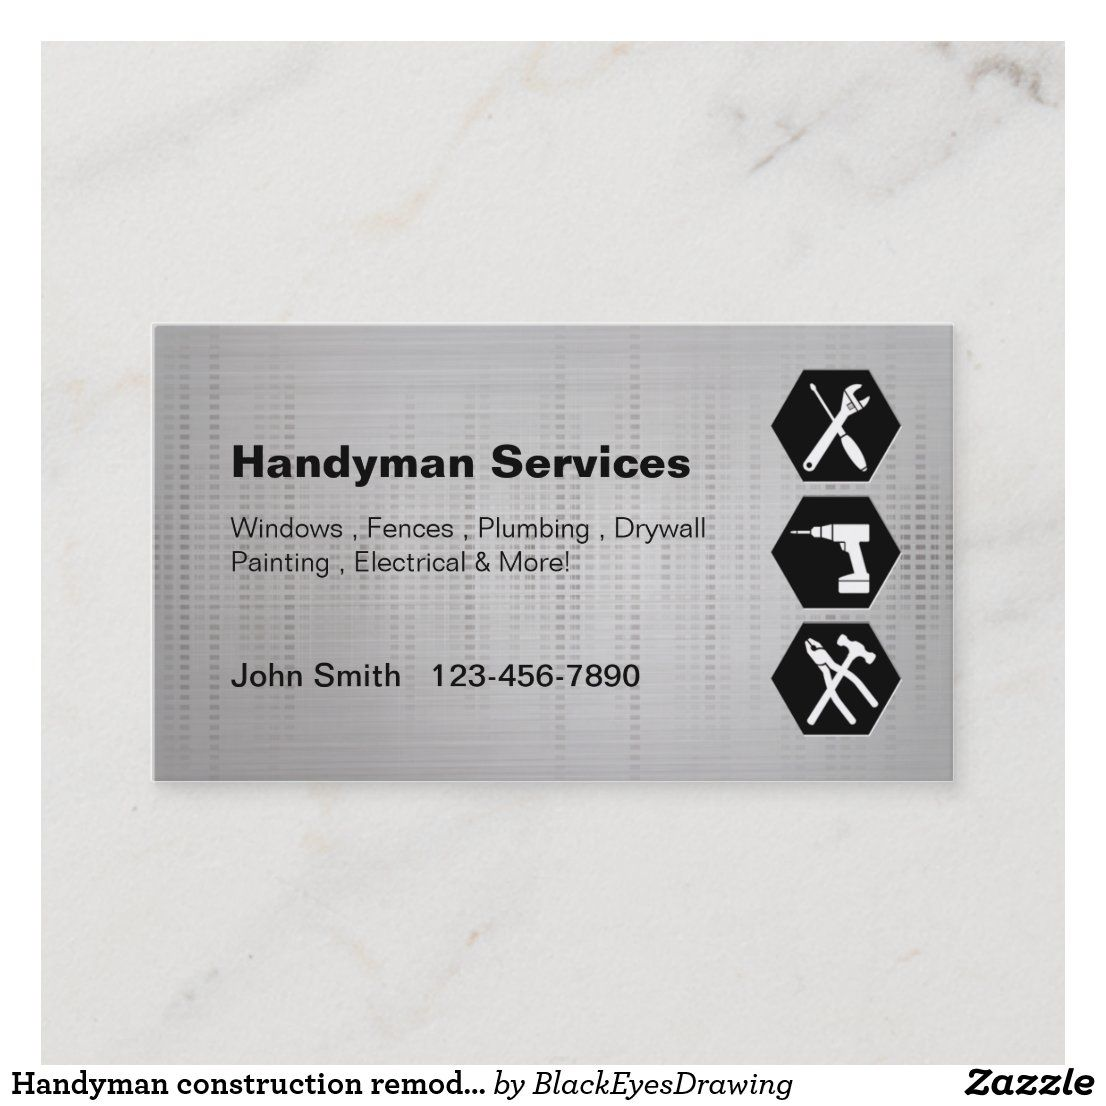 Handyman Construction Remodeling Business Cards Zazzle Com Remodeling Business Construction Business Cards Minimalist Business Cards